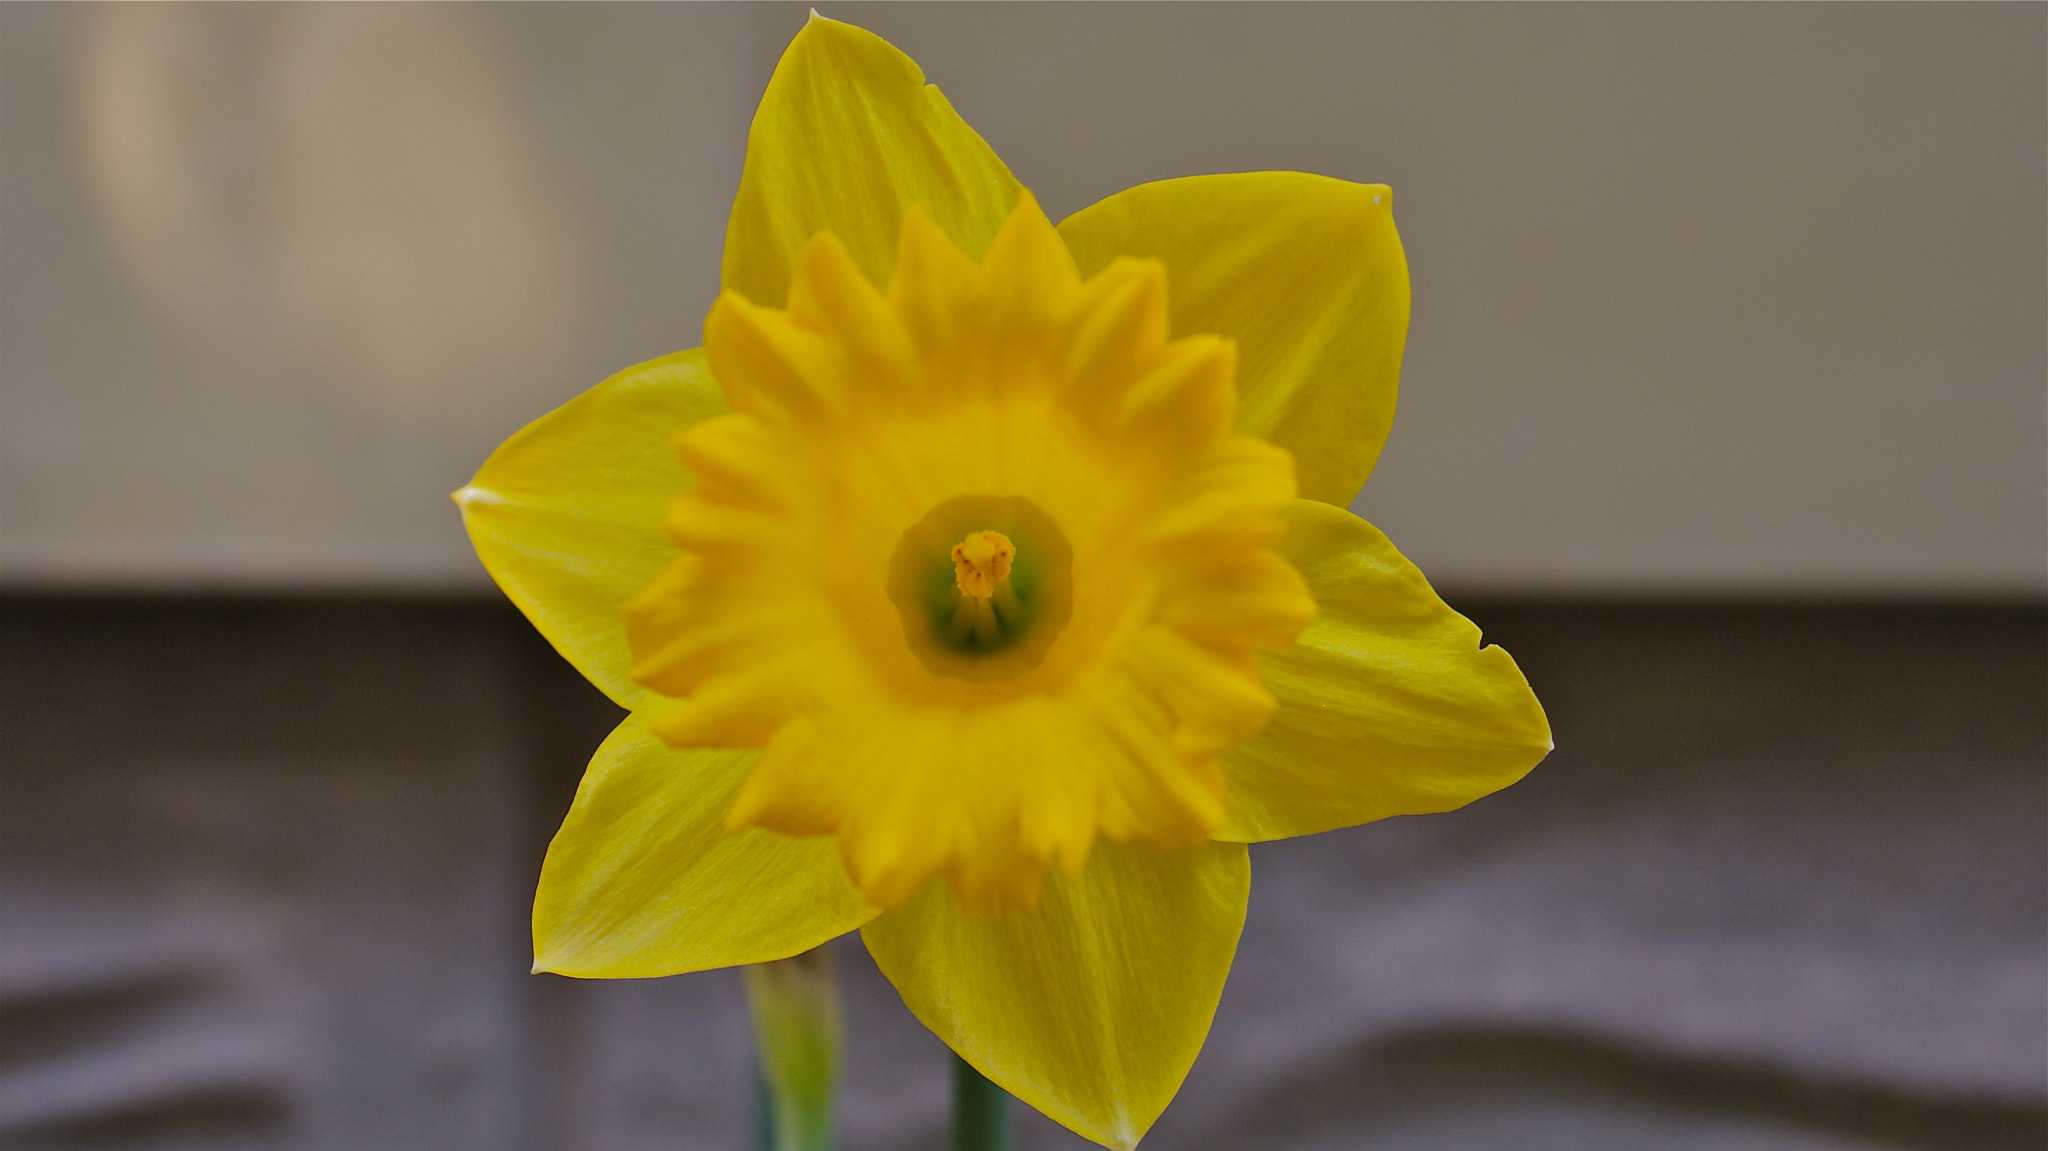 Photograph Daffodil Profile  by Zack Parton on 500px